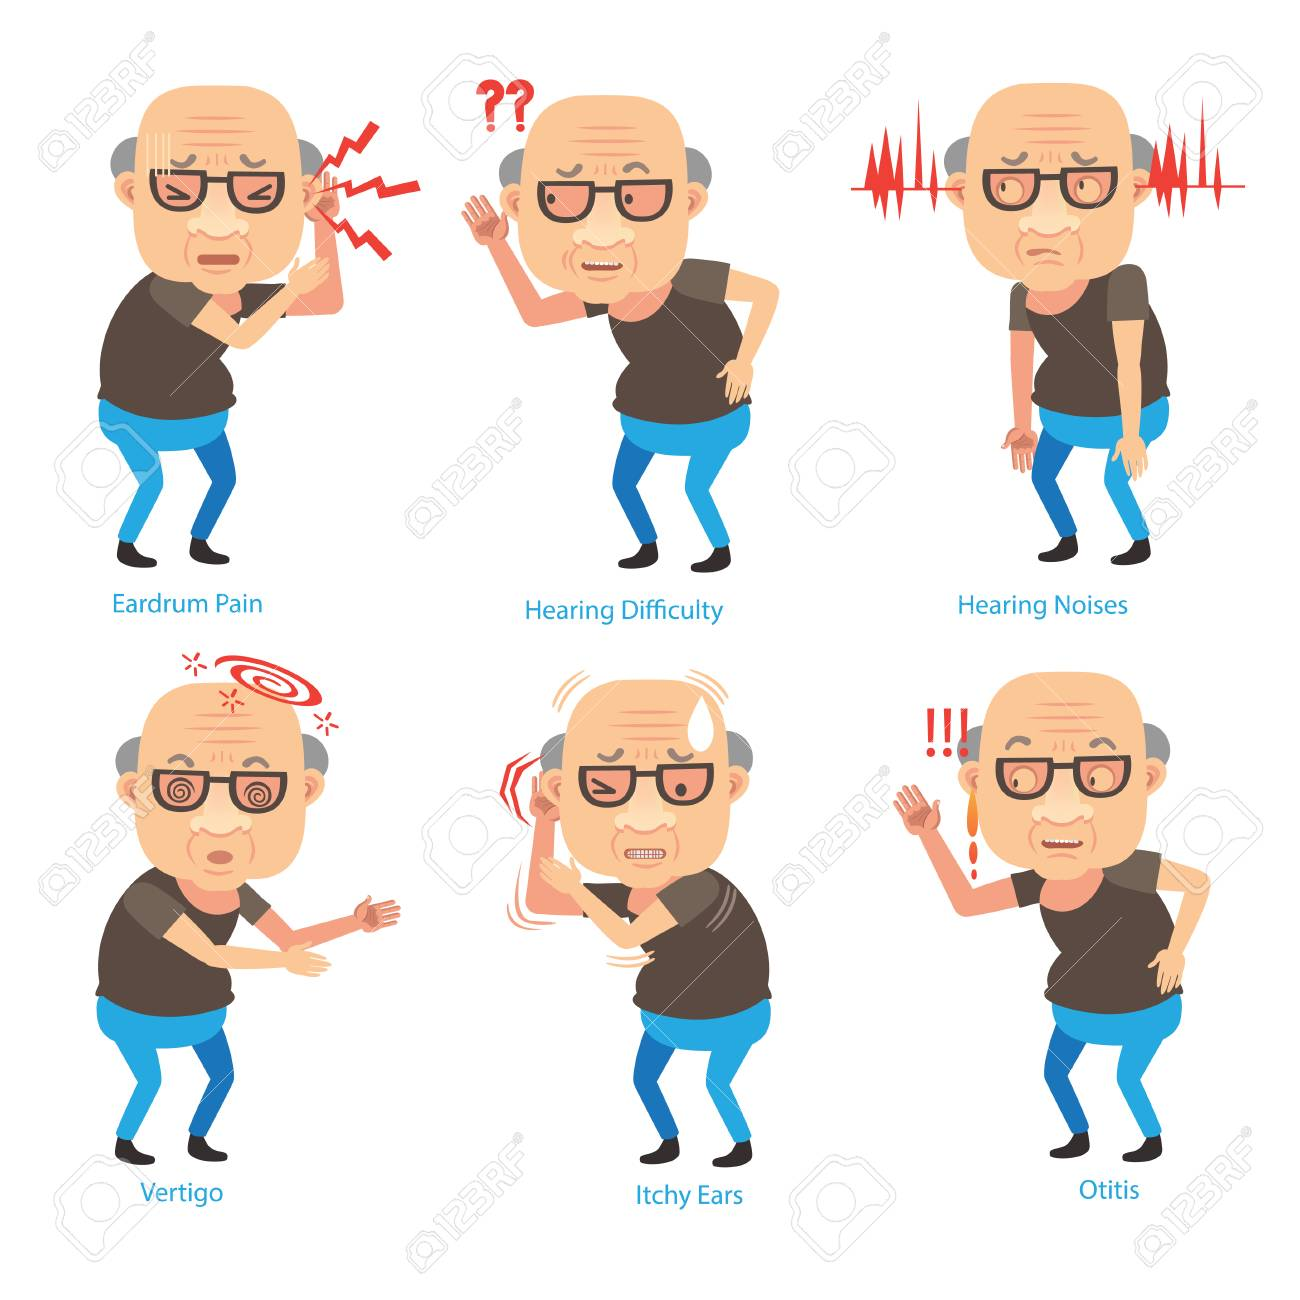 Old man ear problems cupping his ear having difficulty hearing. Cartoon vector illustration - 91984165